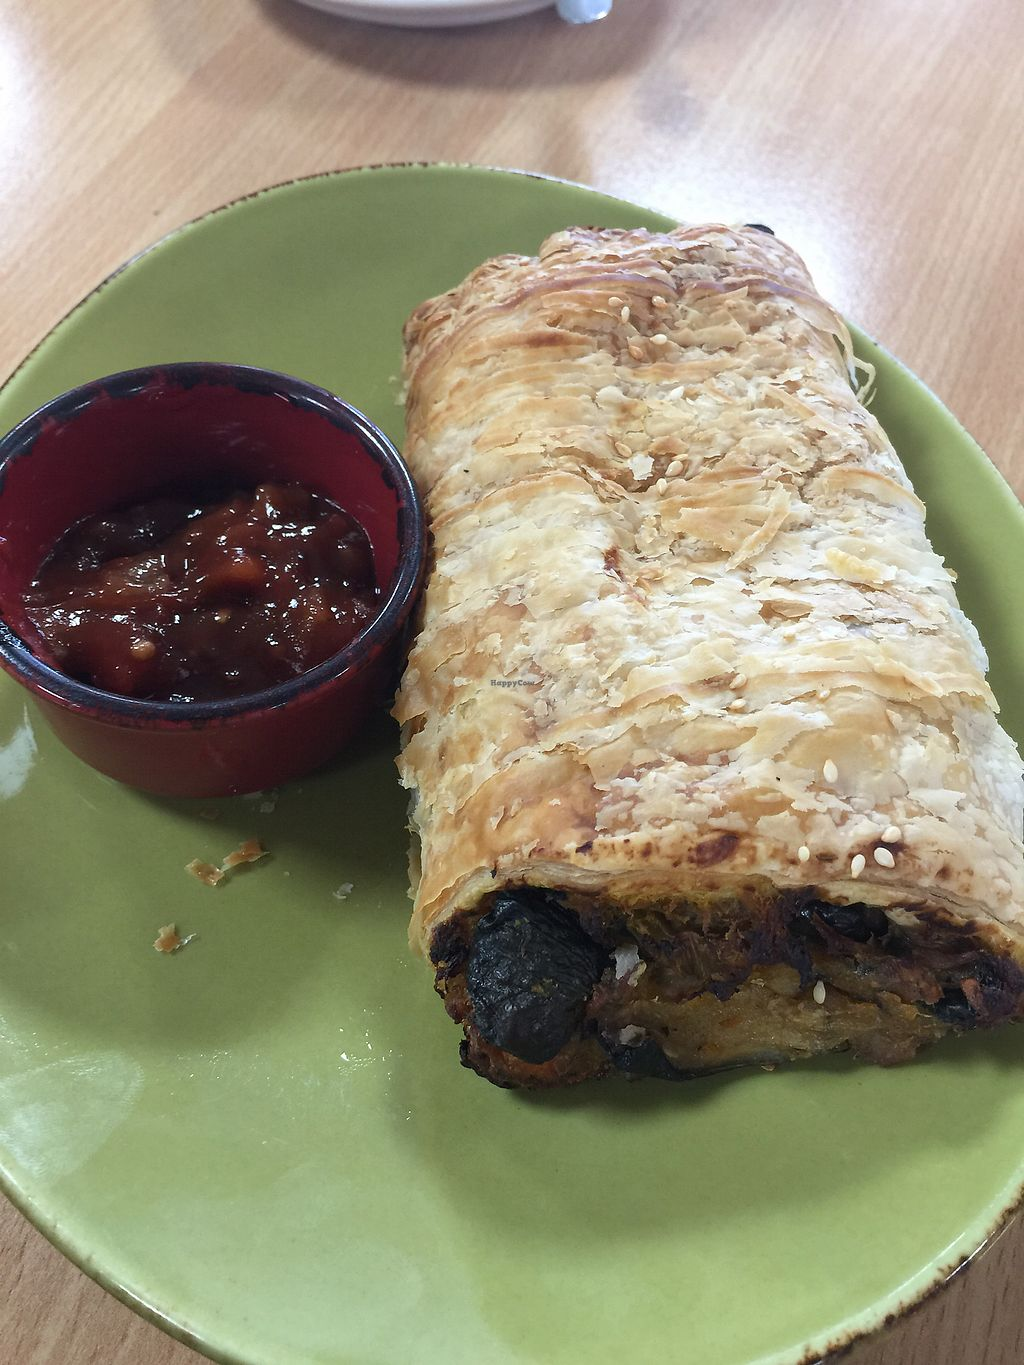 """Photo of Little Sheepish  by <a href=""""/members/profile/Mezz7"""">Mezz7</a> <br/>Vegan pastie with gorgeous  chutney  <br/> March 25, 2018  - <a href='/contact/abuse/image/65300/375747'>Report</a>"""